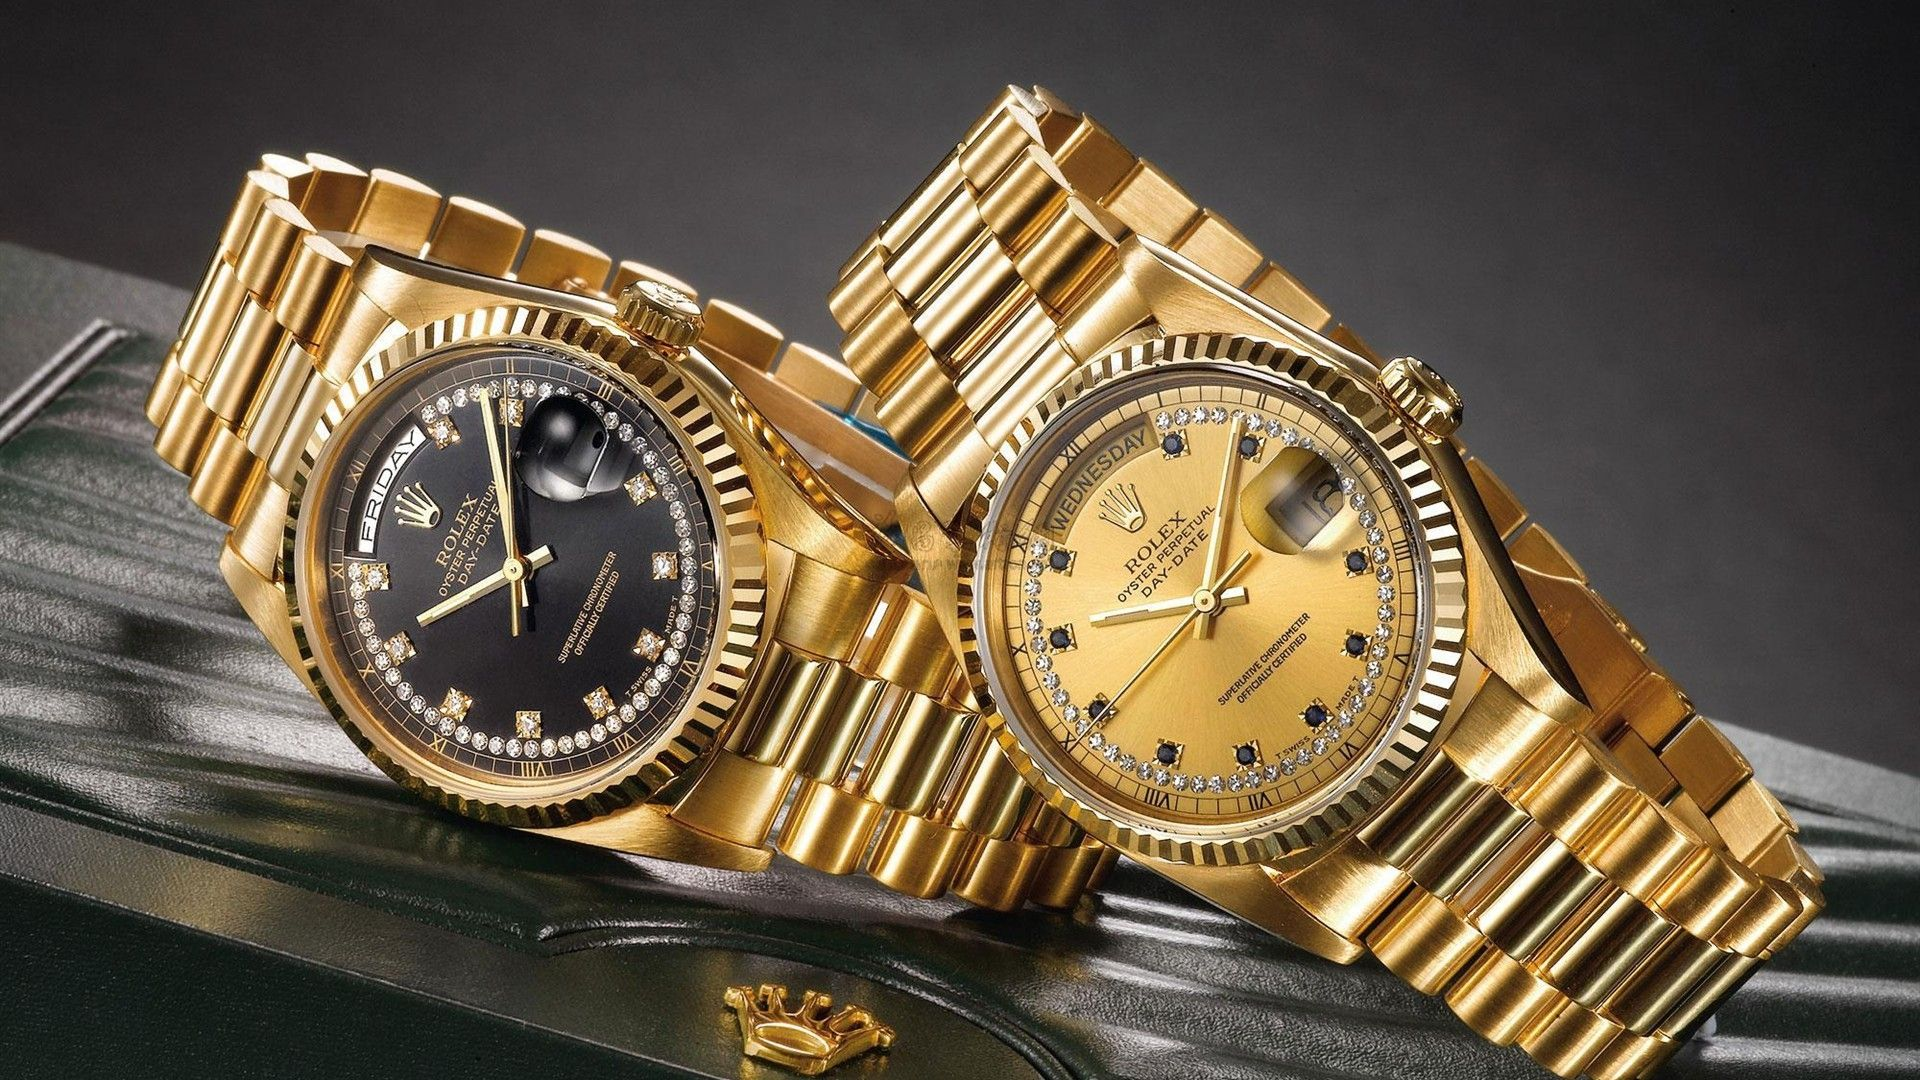 Luxury Mens Rolex Watches Pro Watches Luxury Watches For Men Rolex Watches Luxury Watch Brands